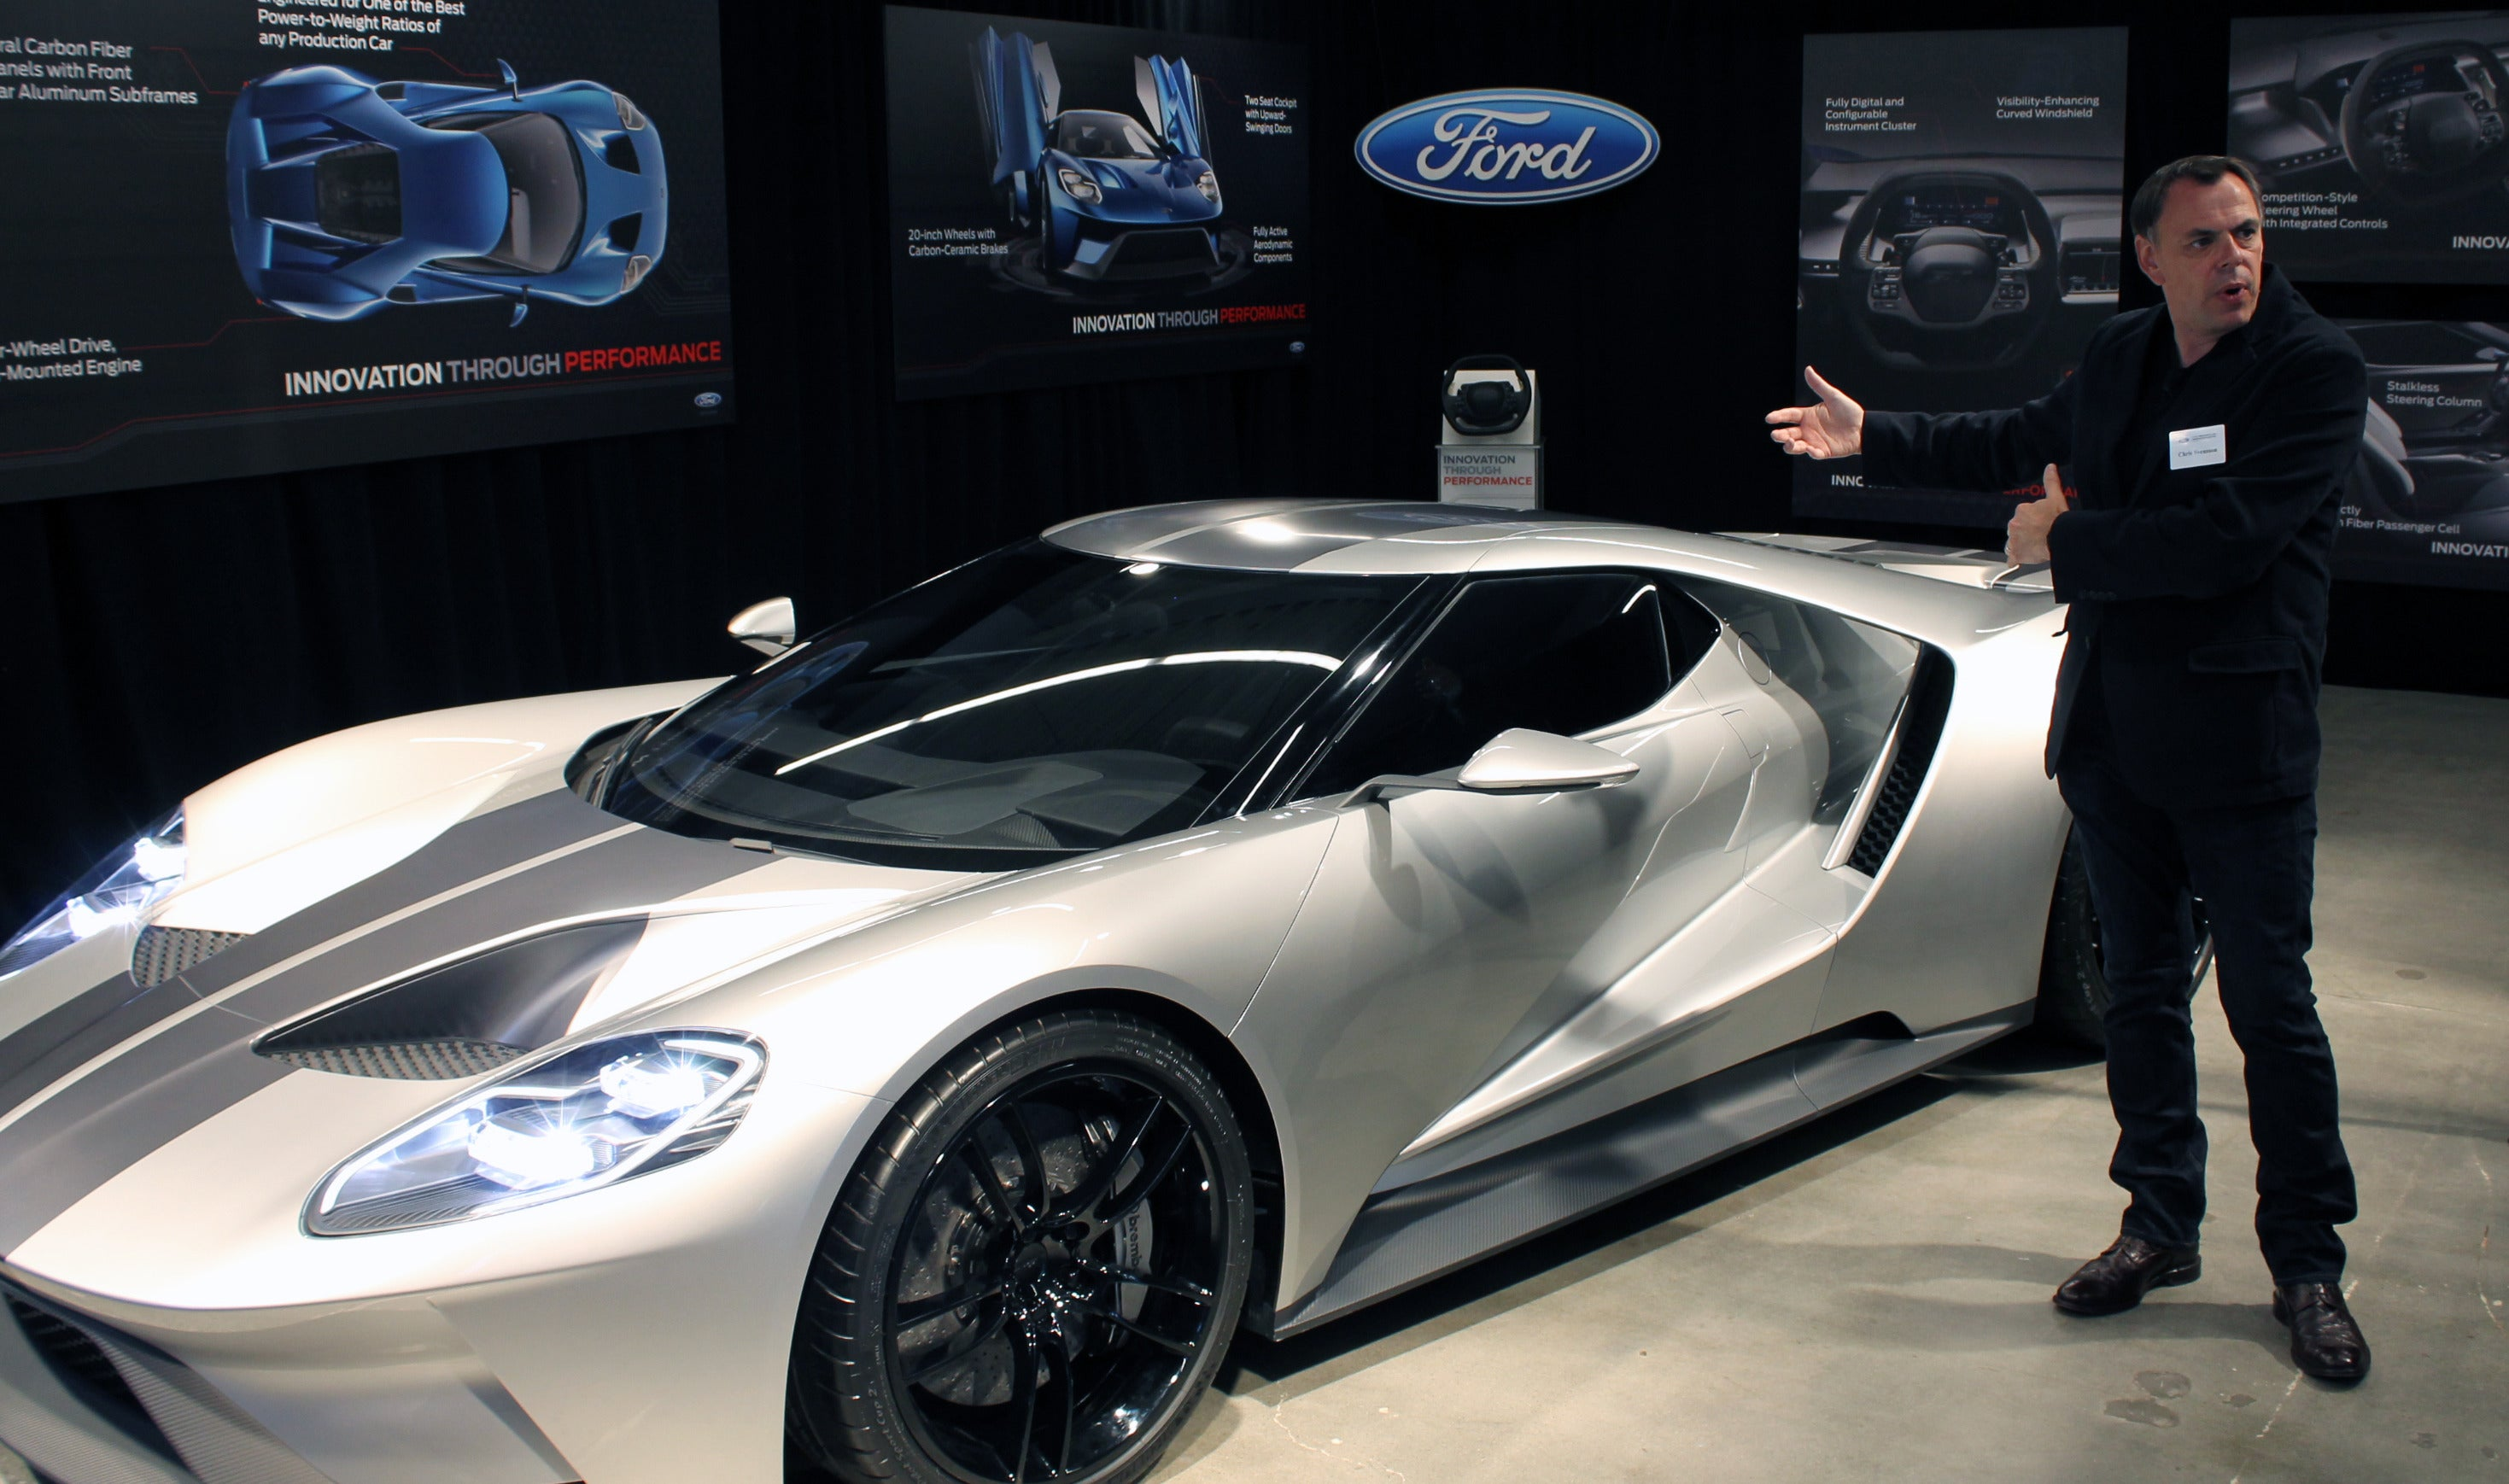 The Ford Gt Is Absolutely Sick With High Tech Innovation